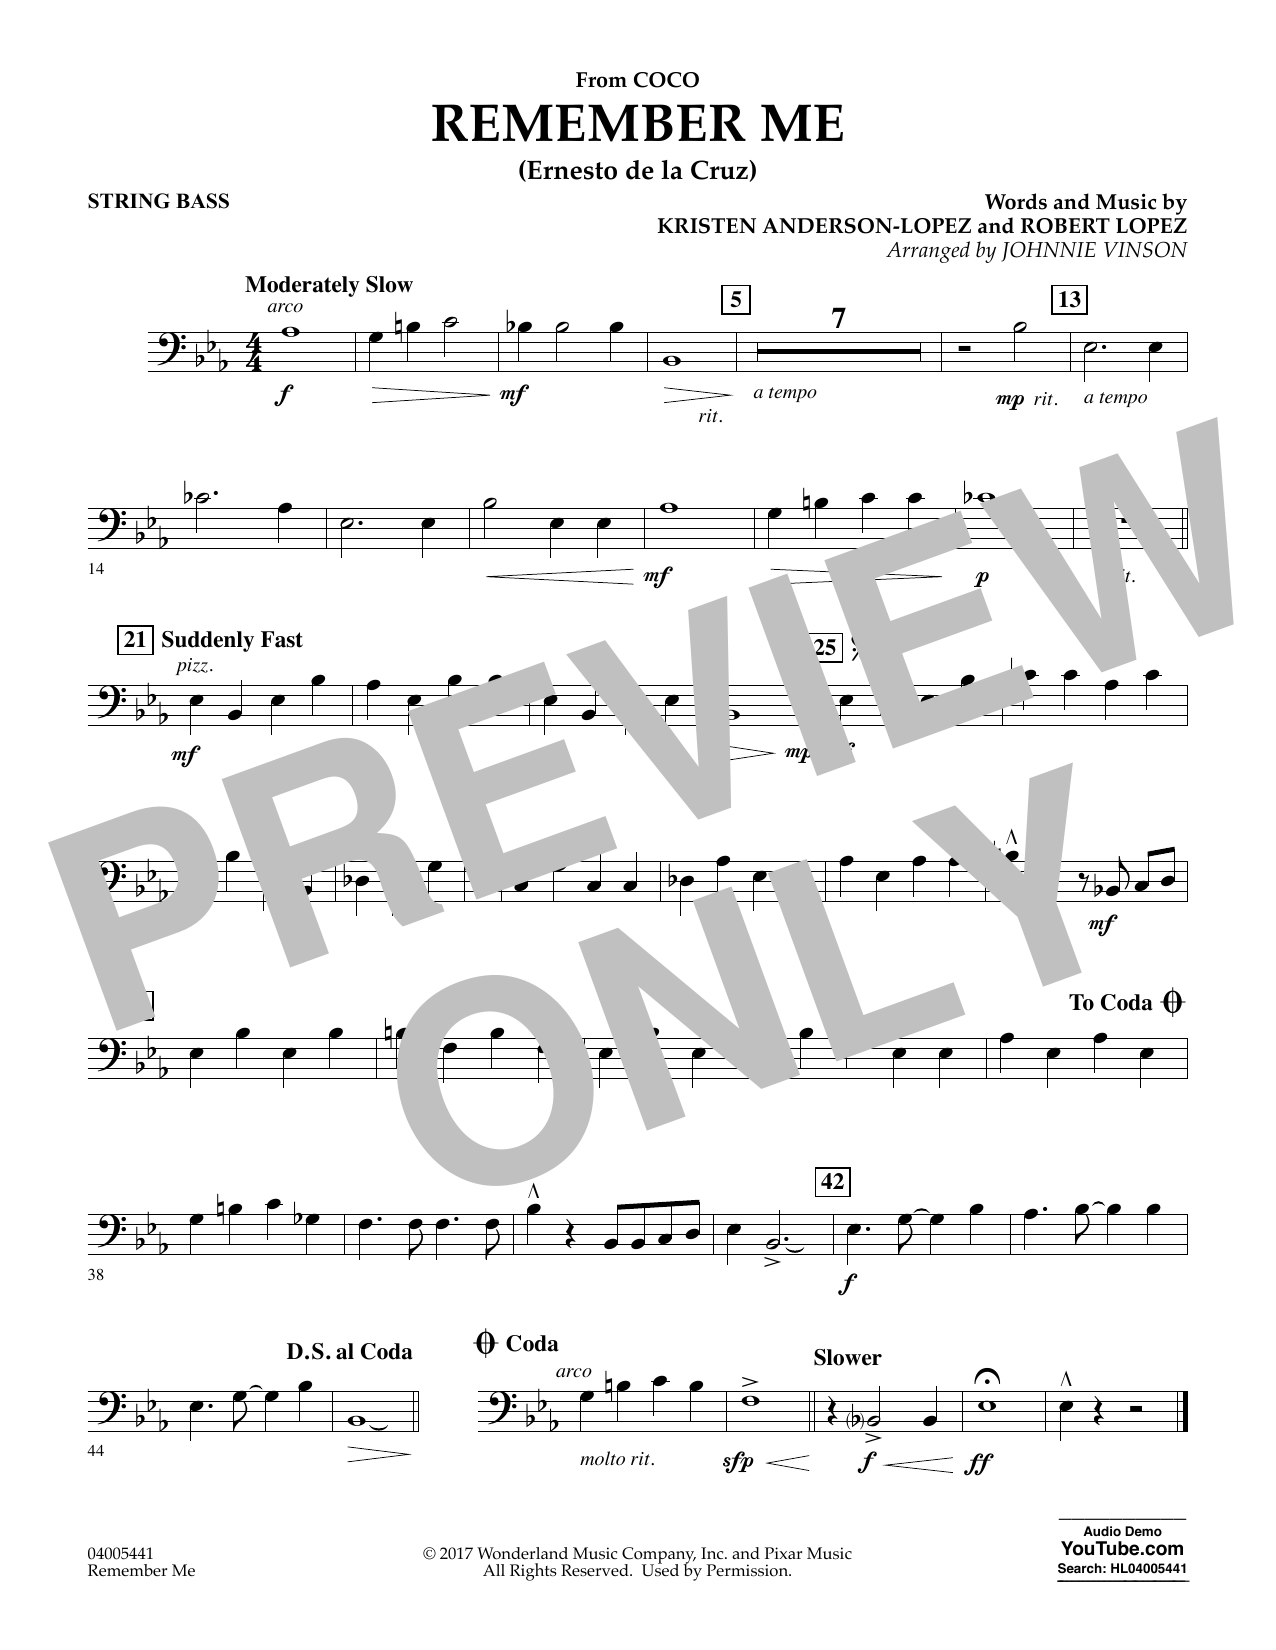 Kristen Anderson-Lopez & Robert Lopez Remember Me (from Coco) (arr. Johnnie Vinson) - Bass sheet music notes and chords. Download Printable PDF.